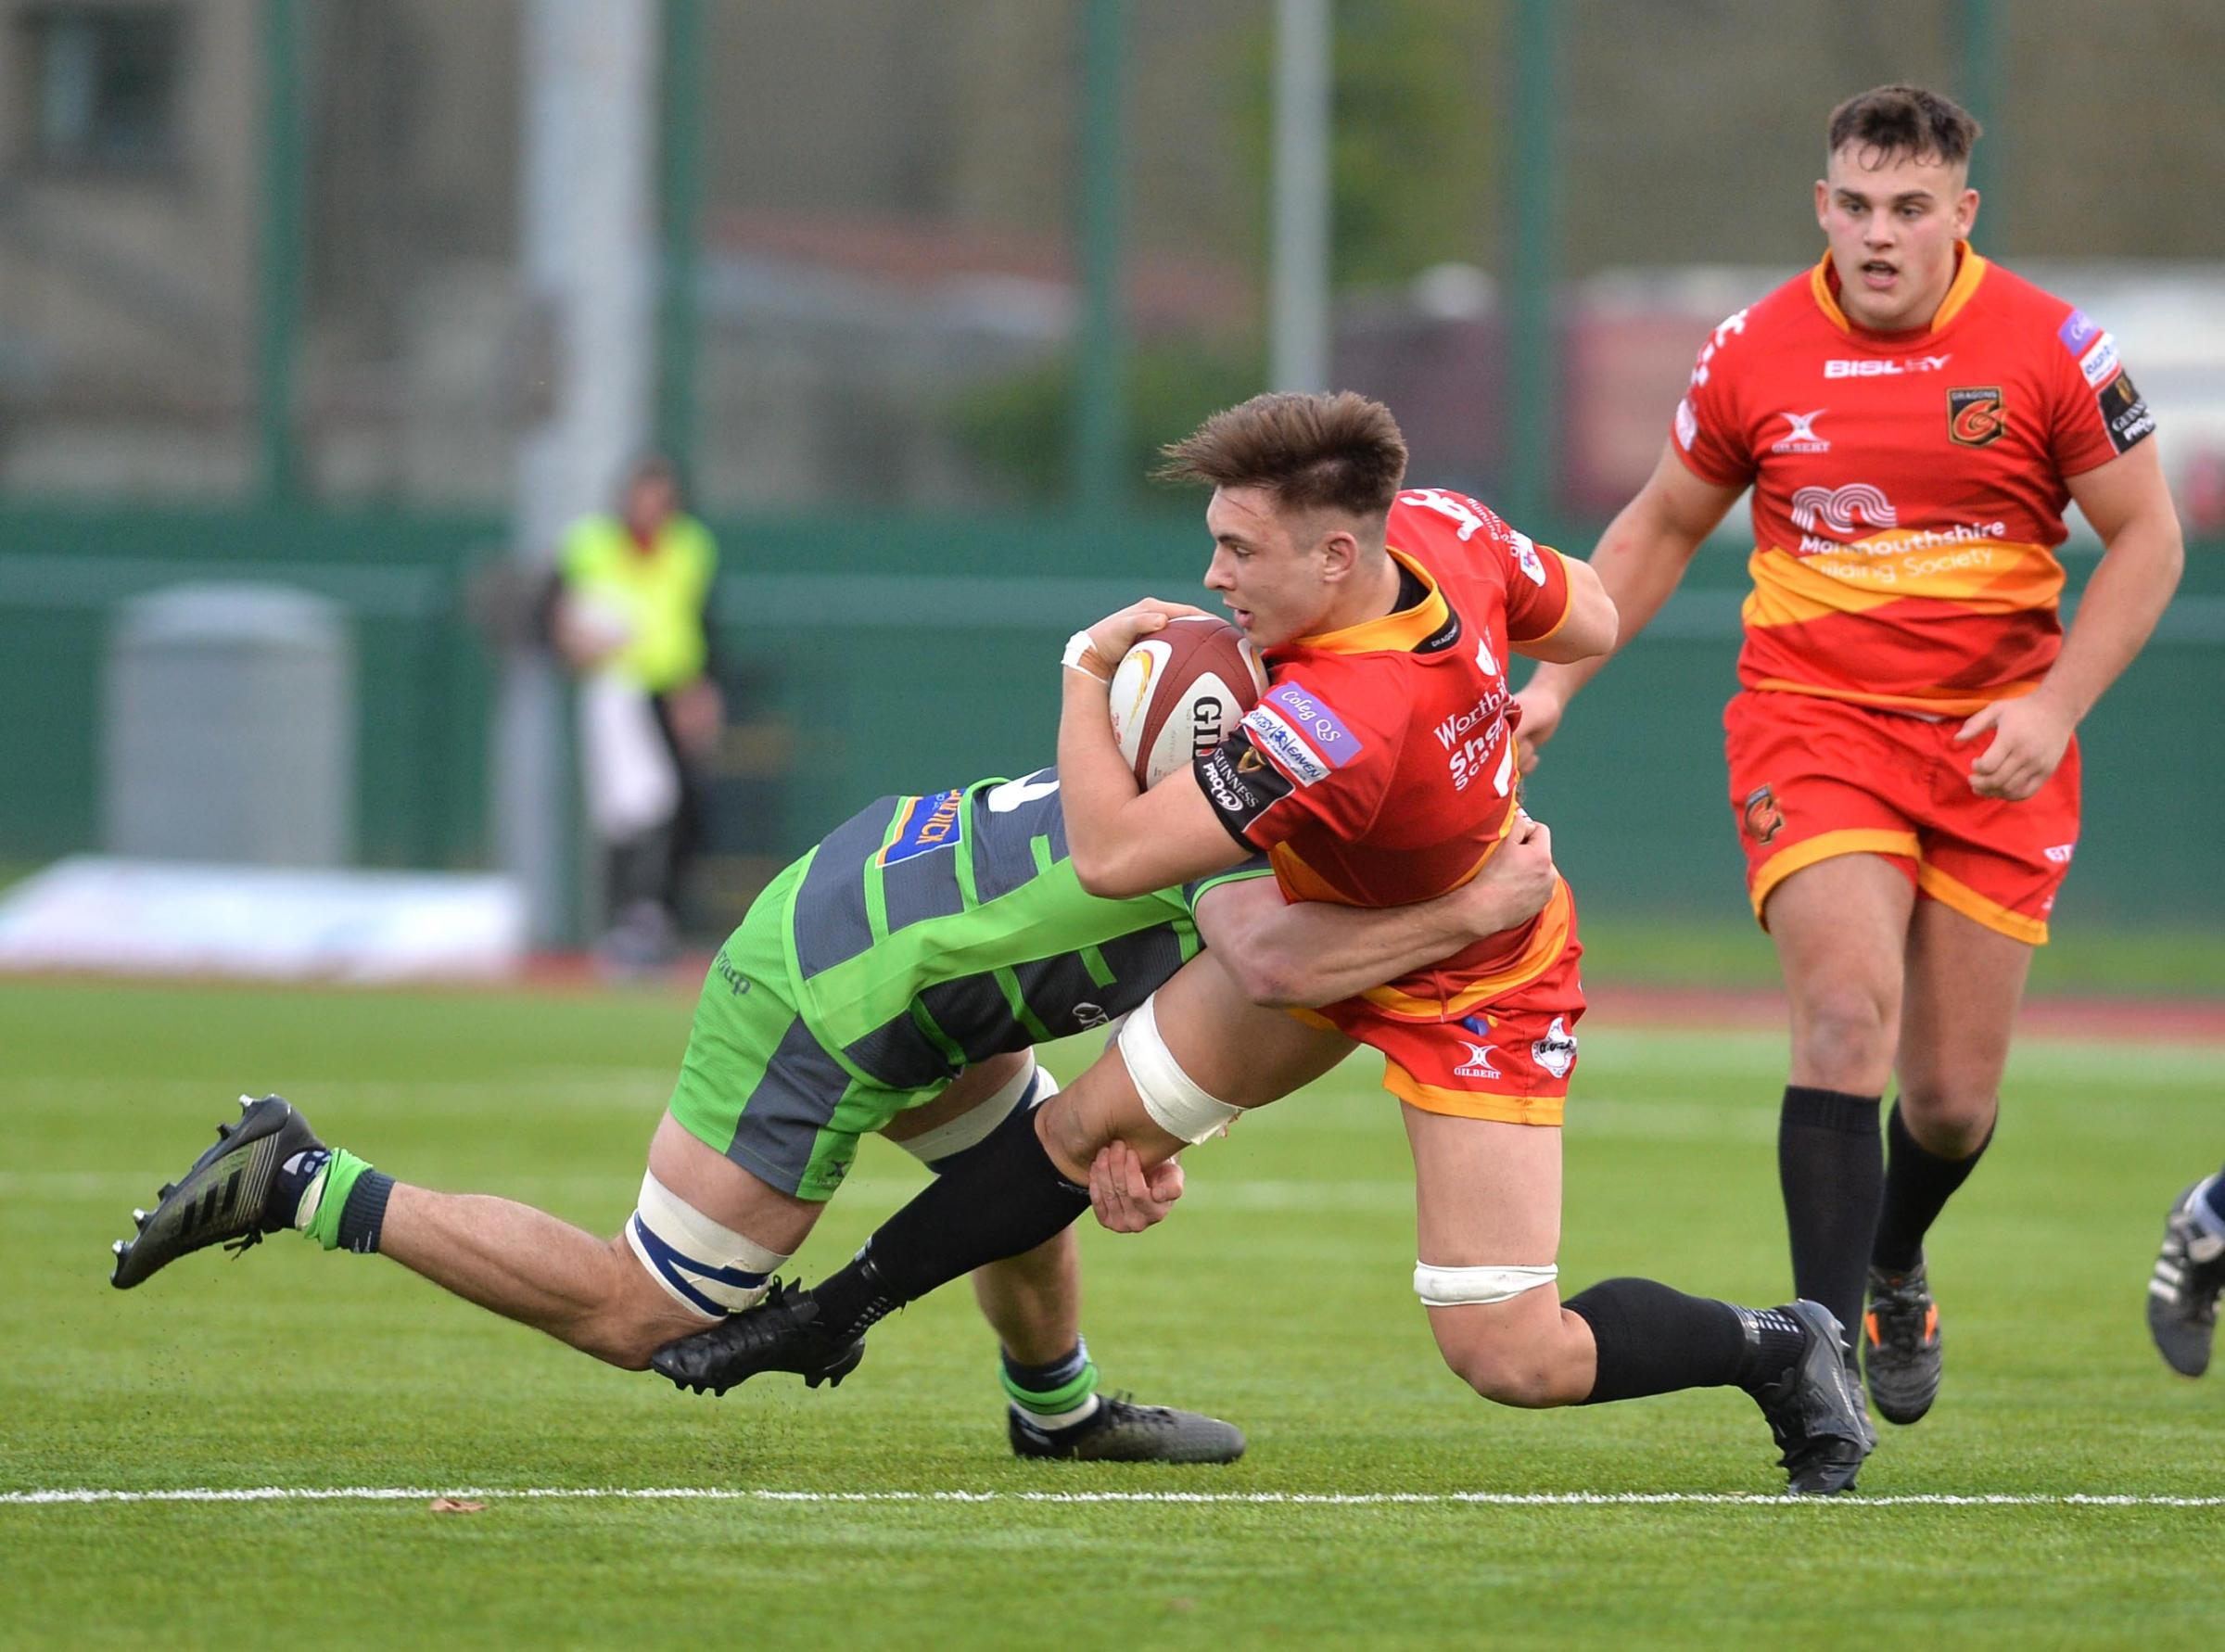 RAPID RISE: Last January Taine Basham made his full Bedwas debut, now he's starting for the Dragons